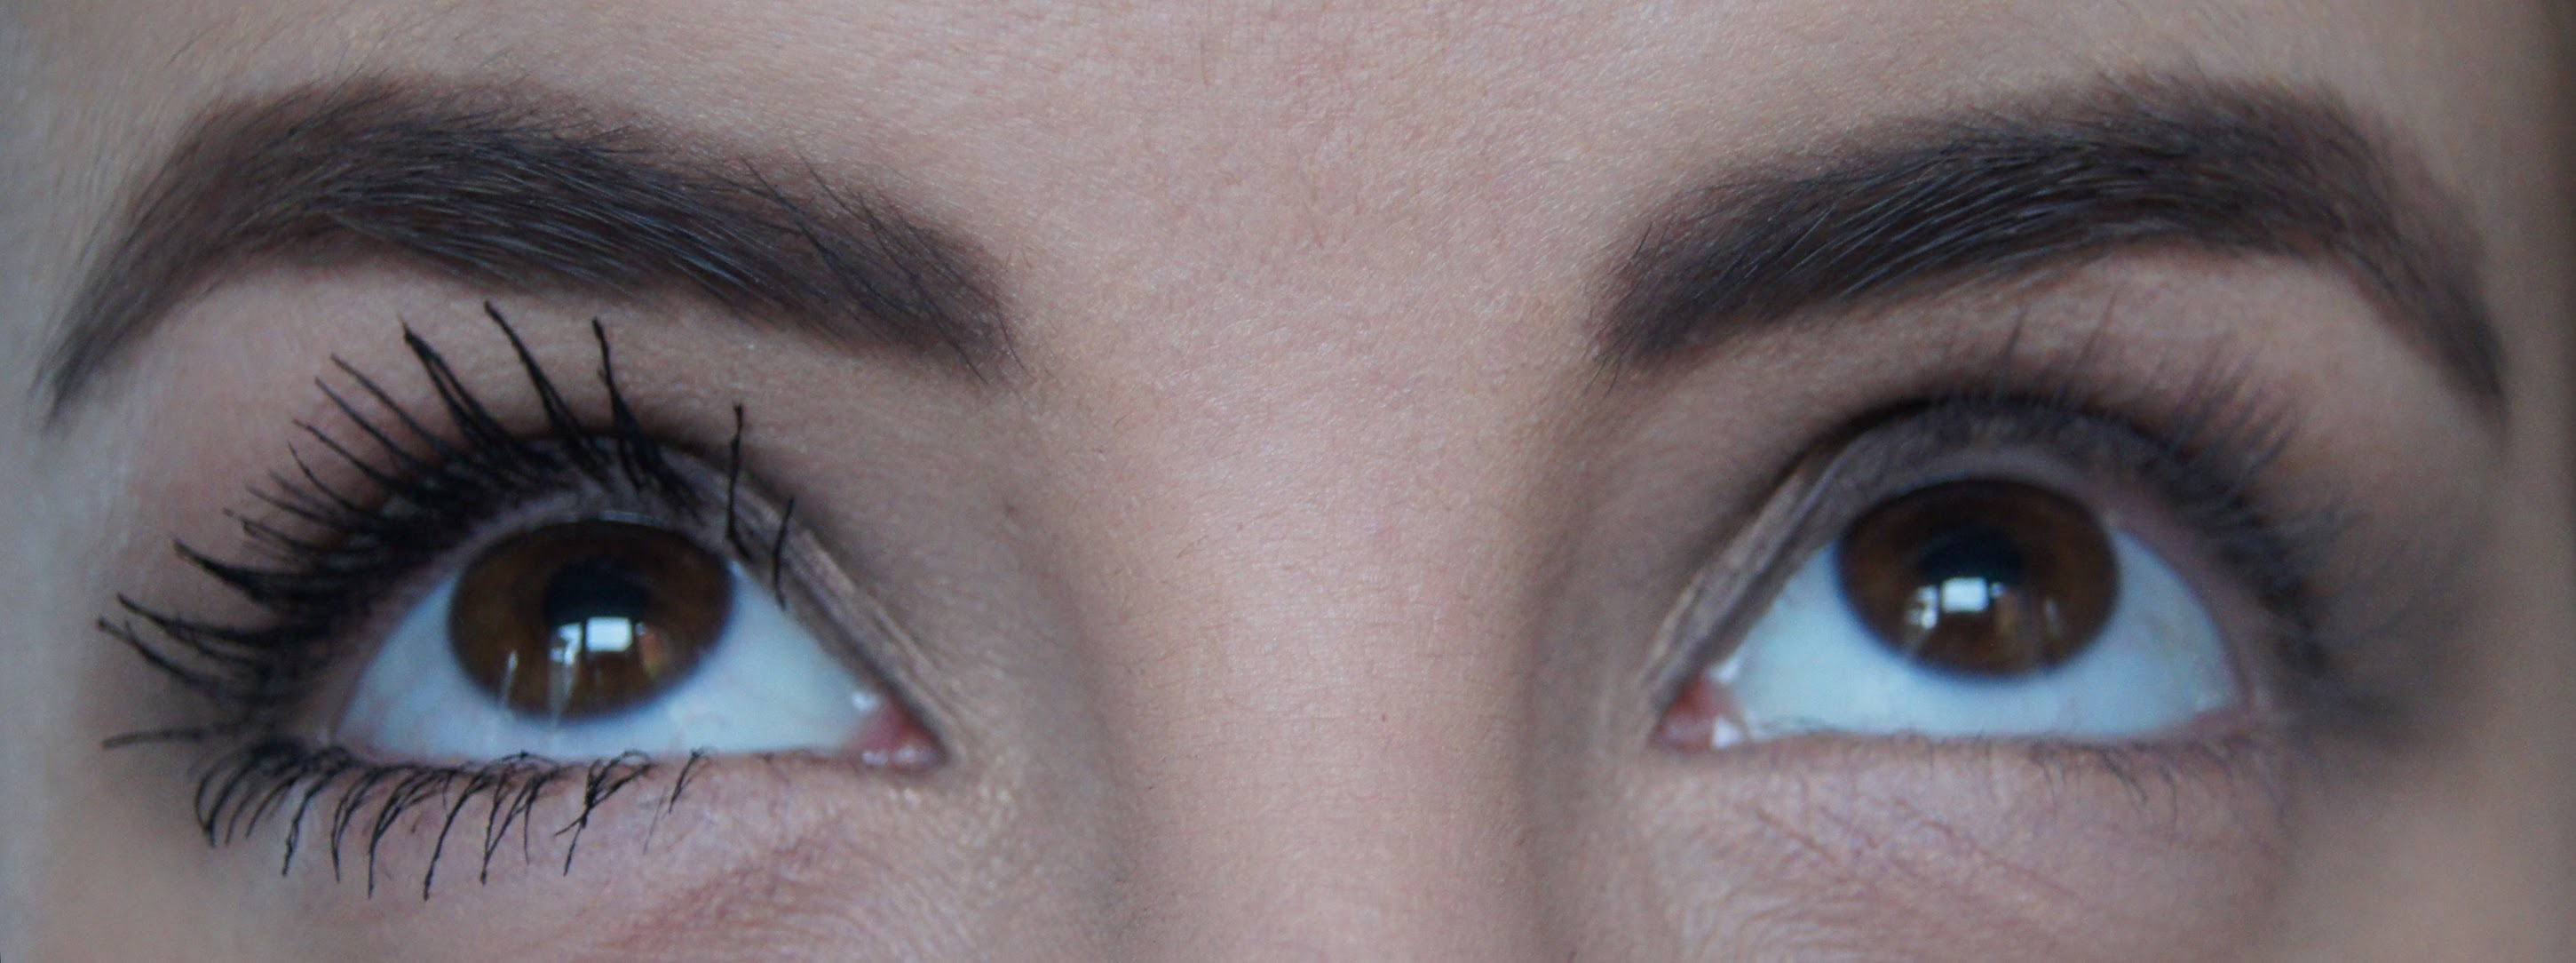 benefit they're real mascara swatch with and without mascara before after